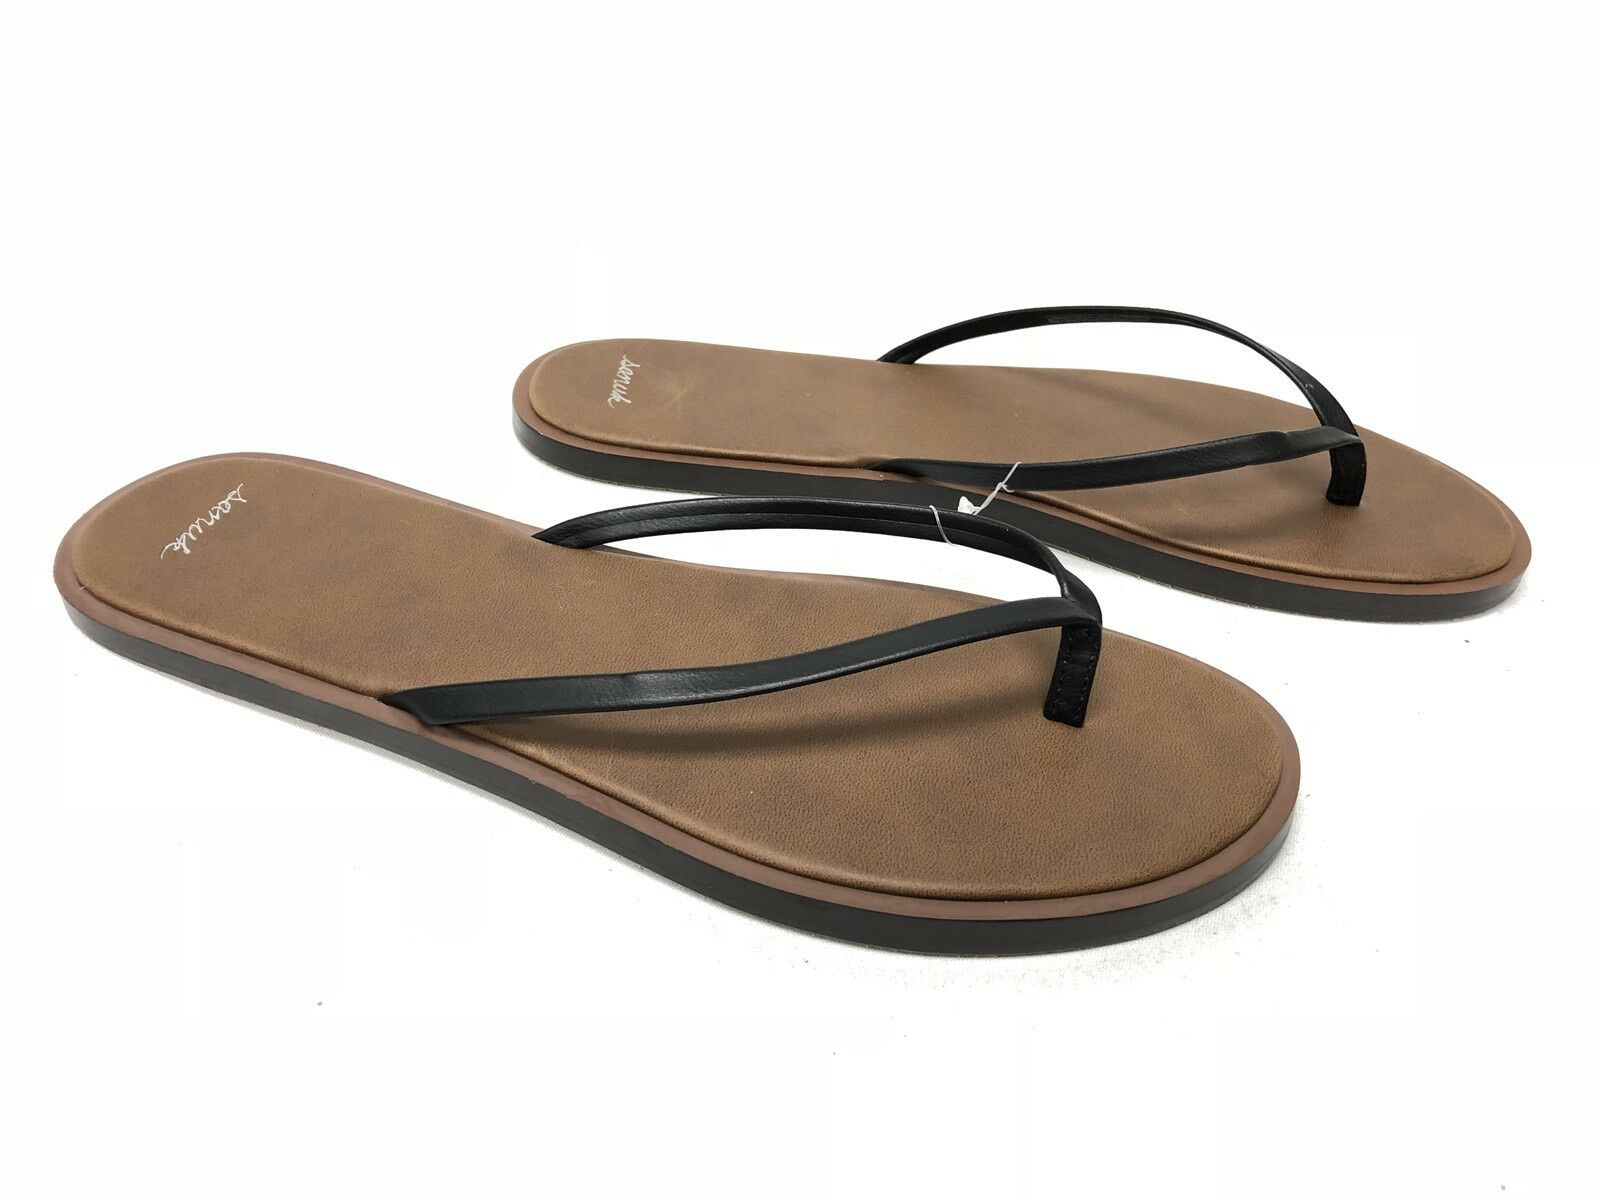 SANUK YOGA AURORA FLIP FLOPS SANDALS Black Mat Women's 1018657 Sandals Yoga Mat Black New e51445